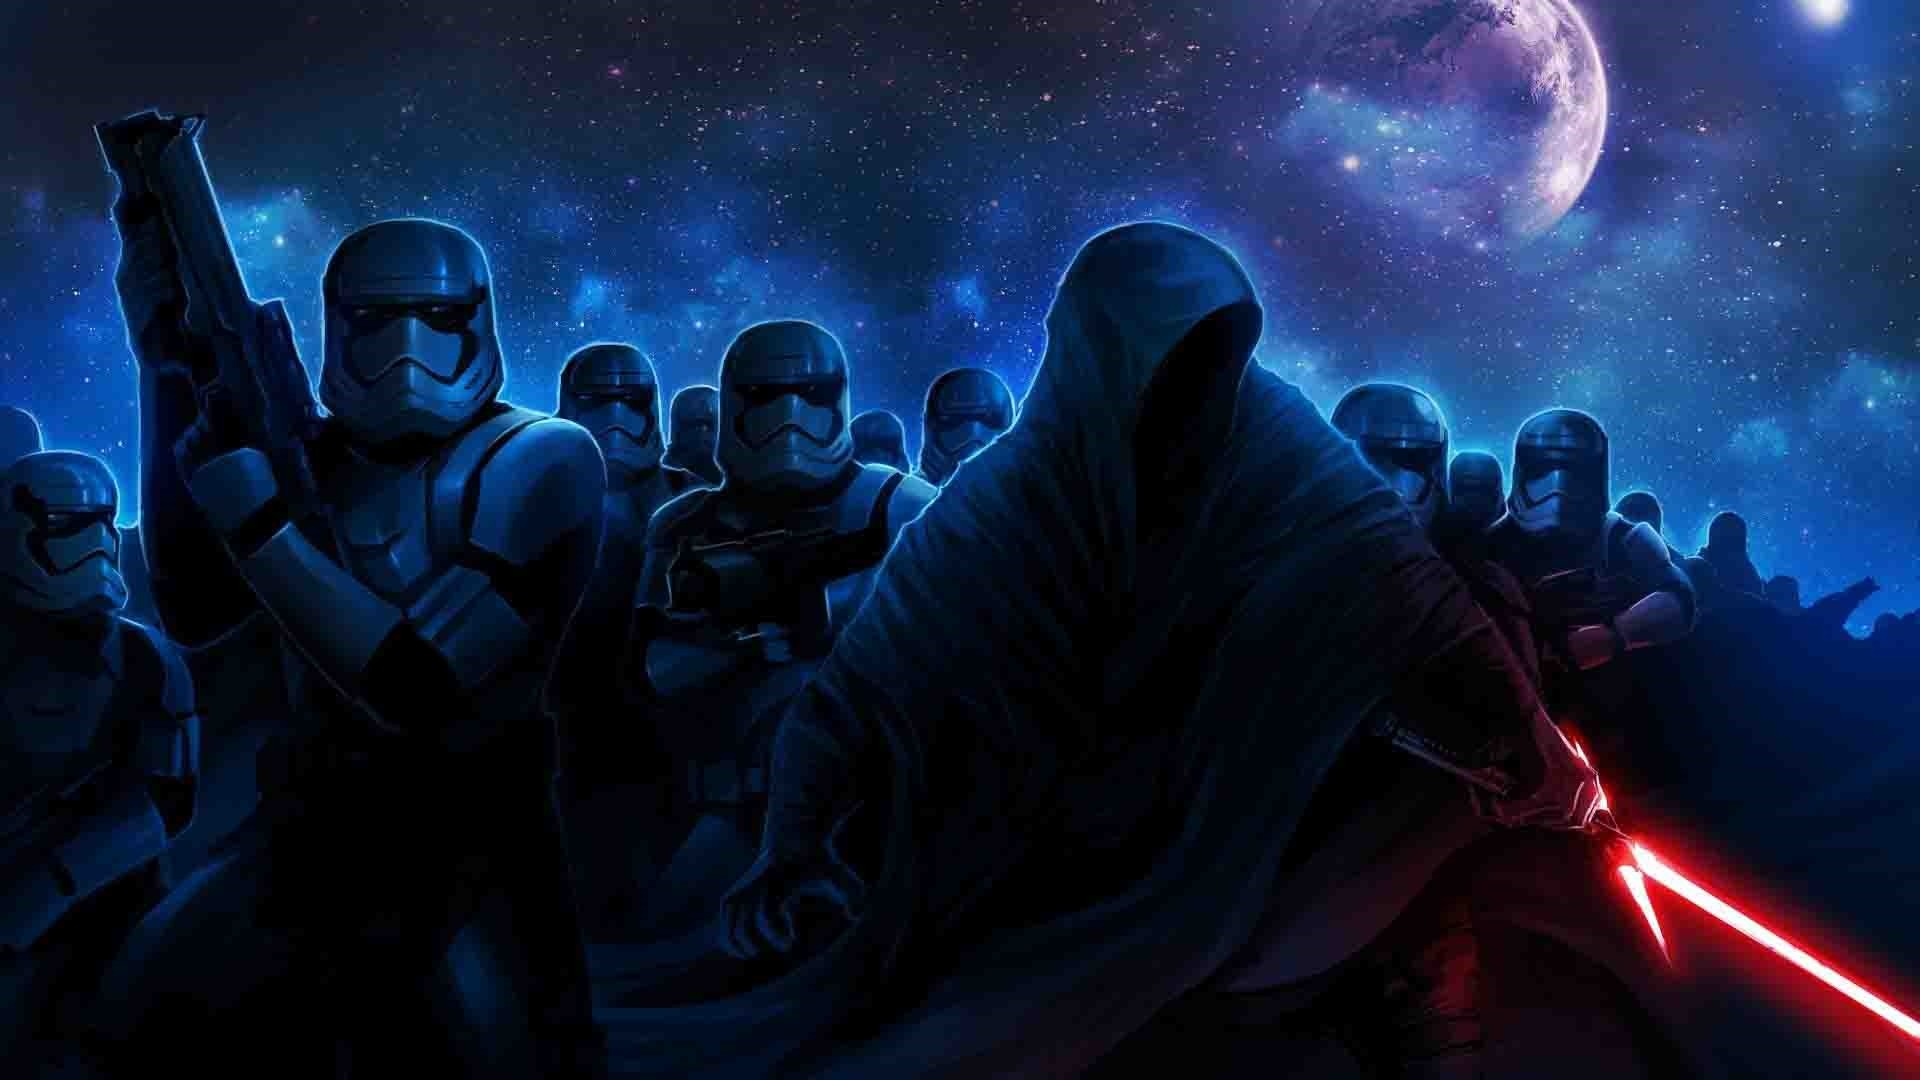 Darth Vader Wallpaper Desktop